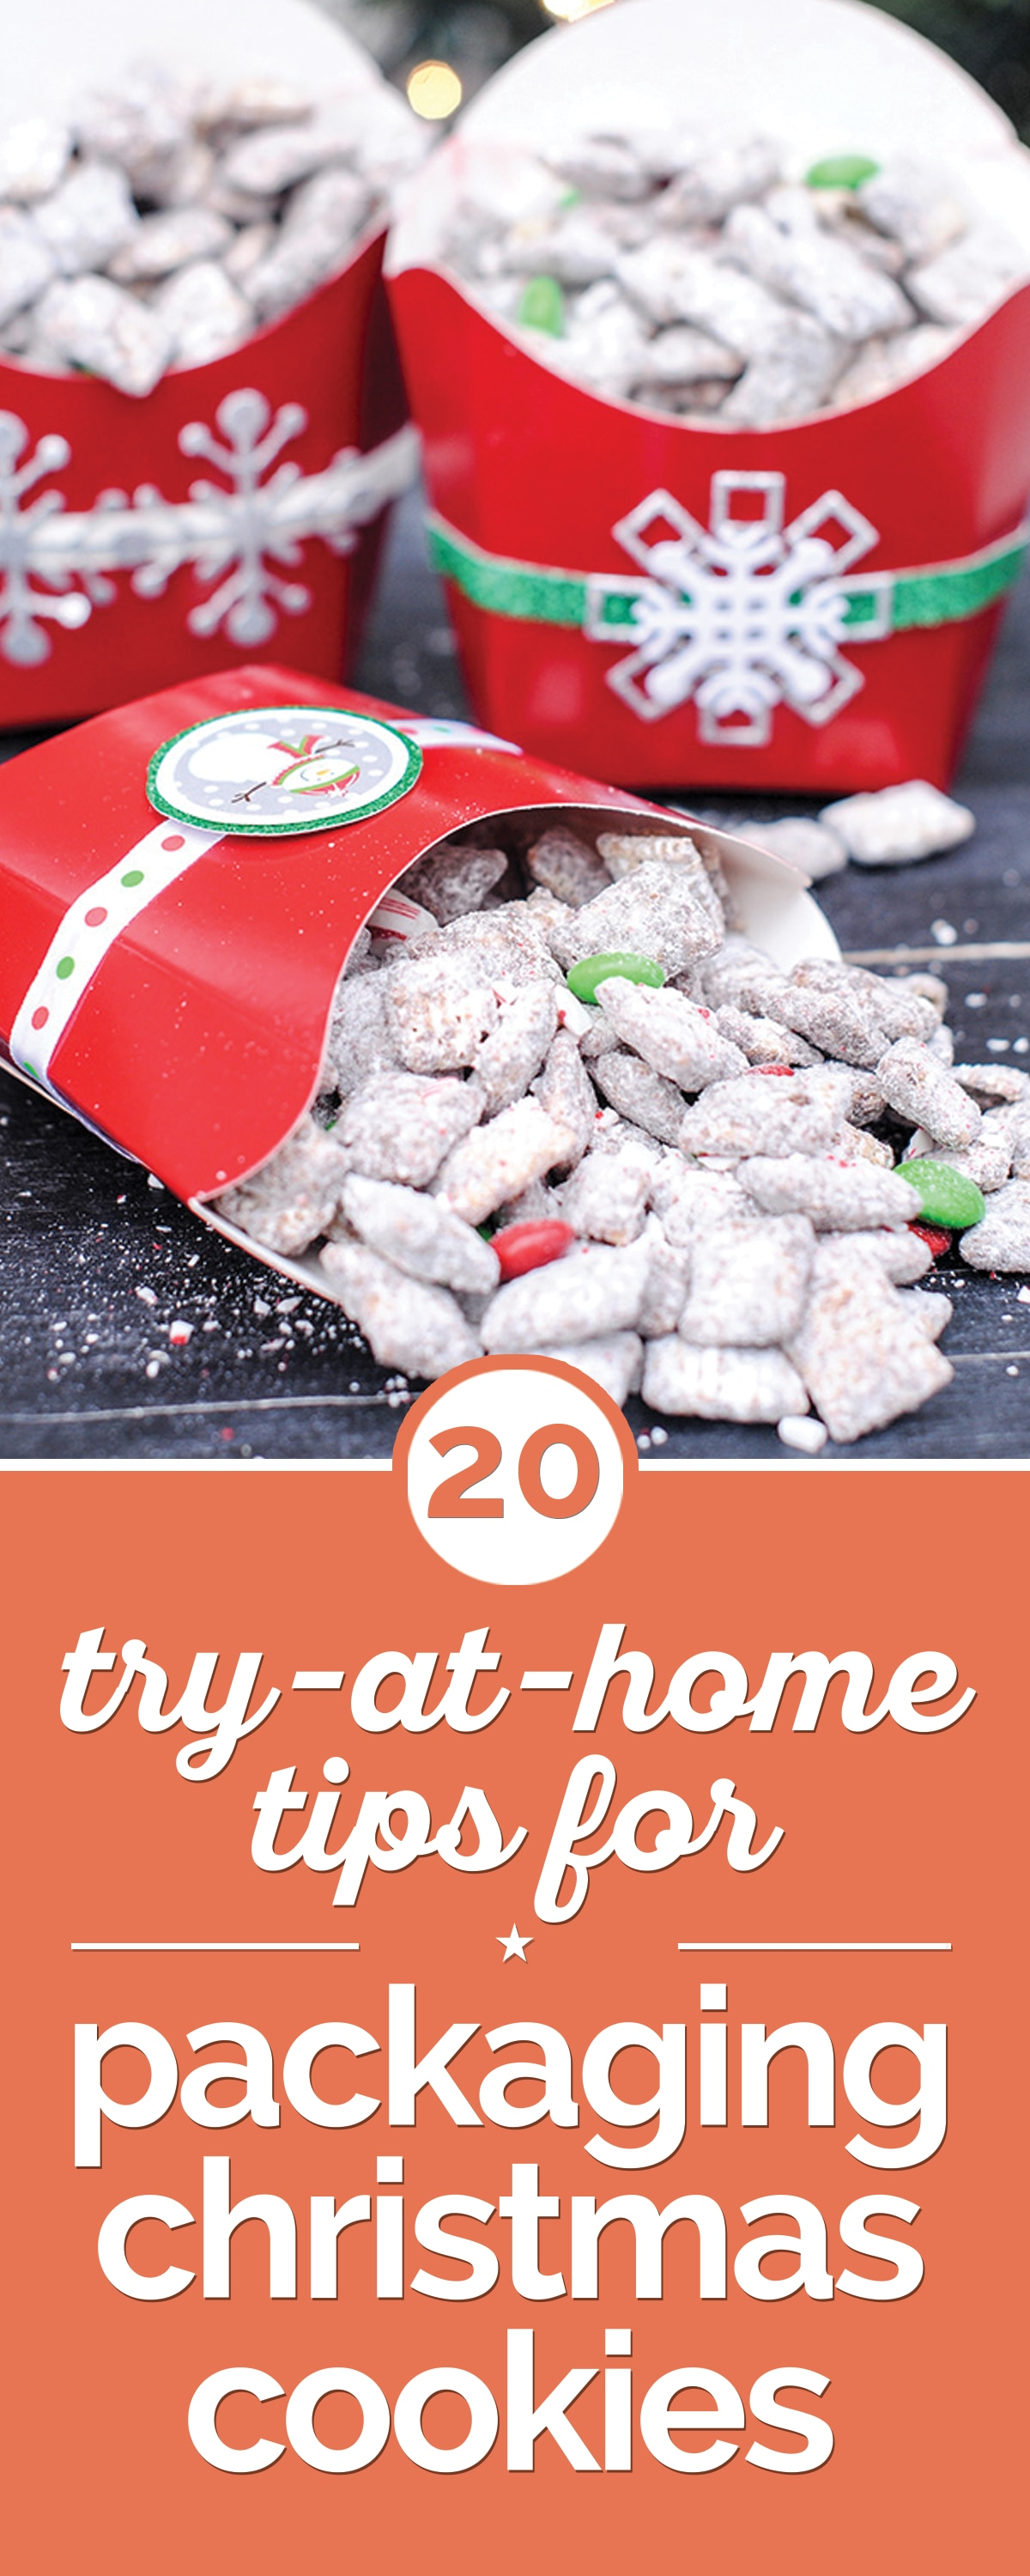 20 Try-At-Home Tips for Packaging Christmas Cookies | thegoodstuff